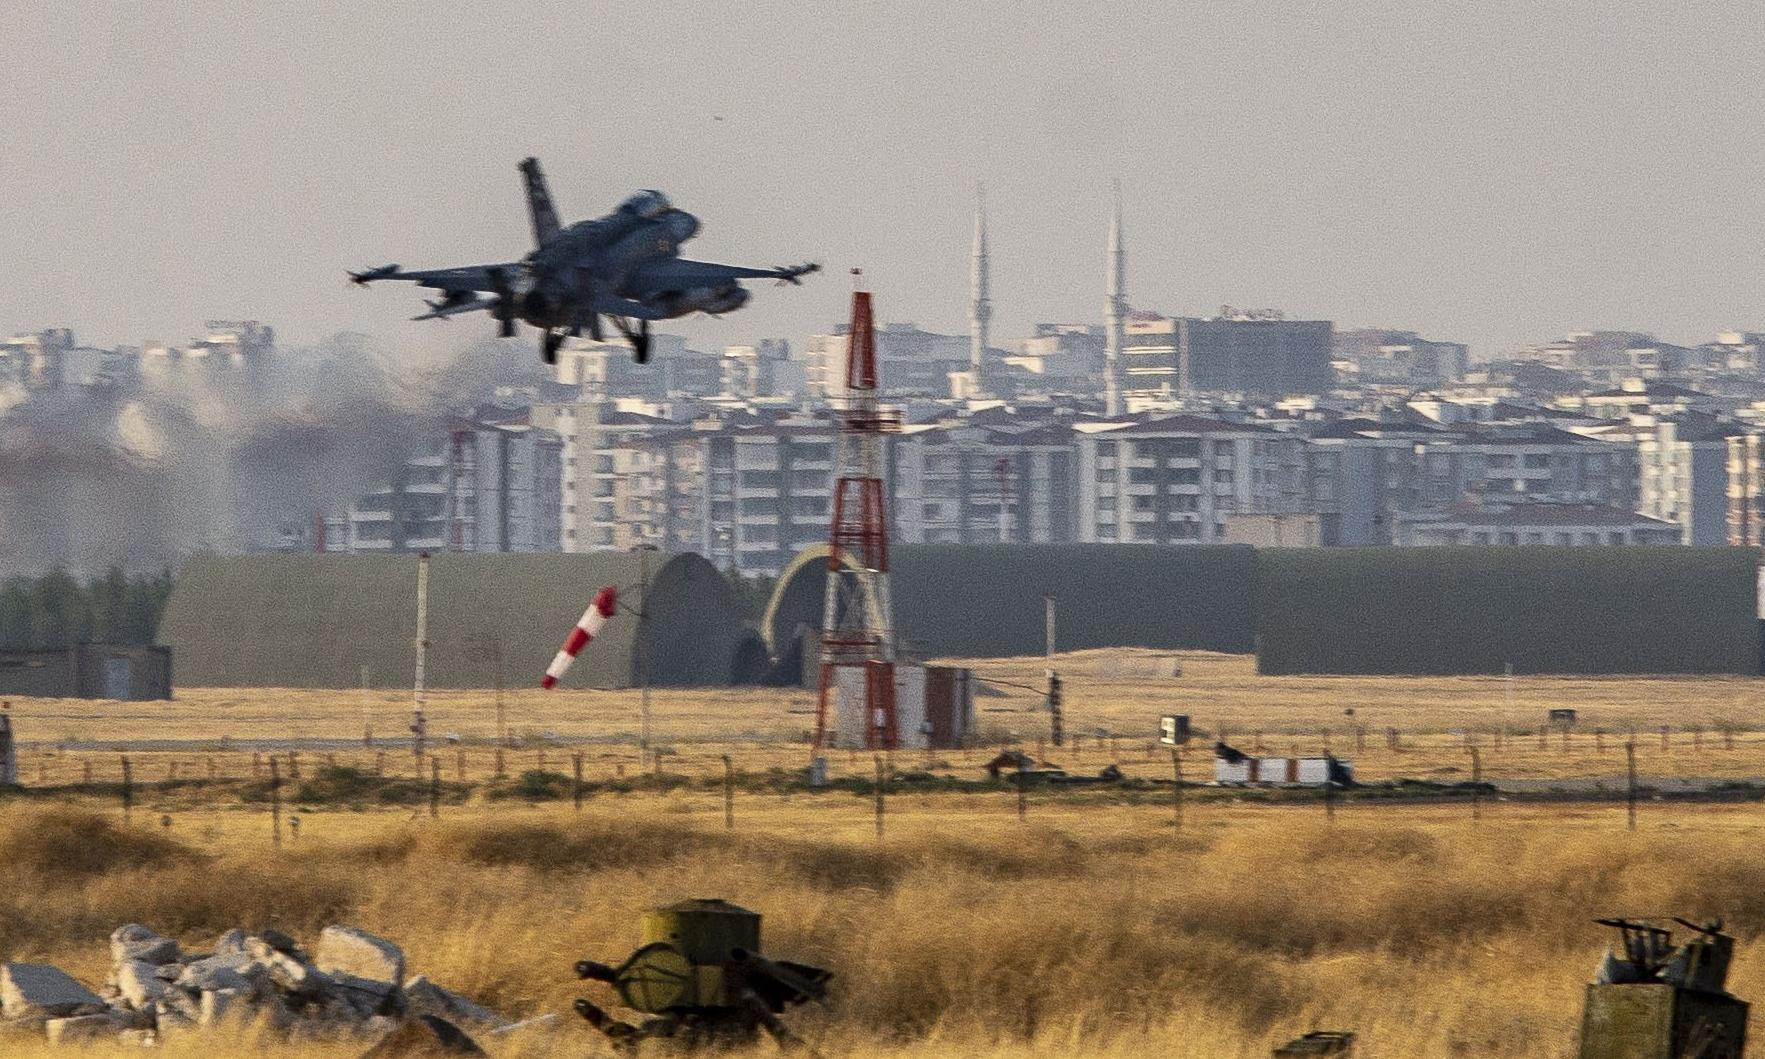 Turkey plans to speed up fighter jet project with Britain